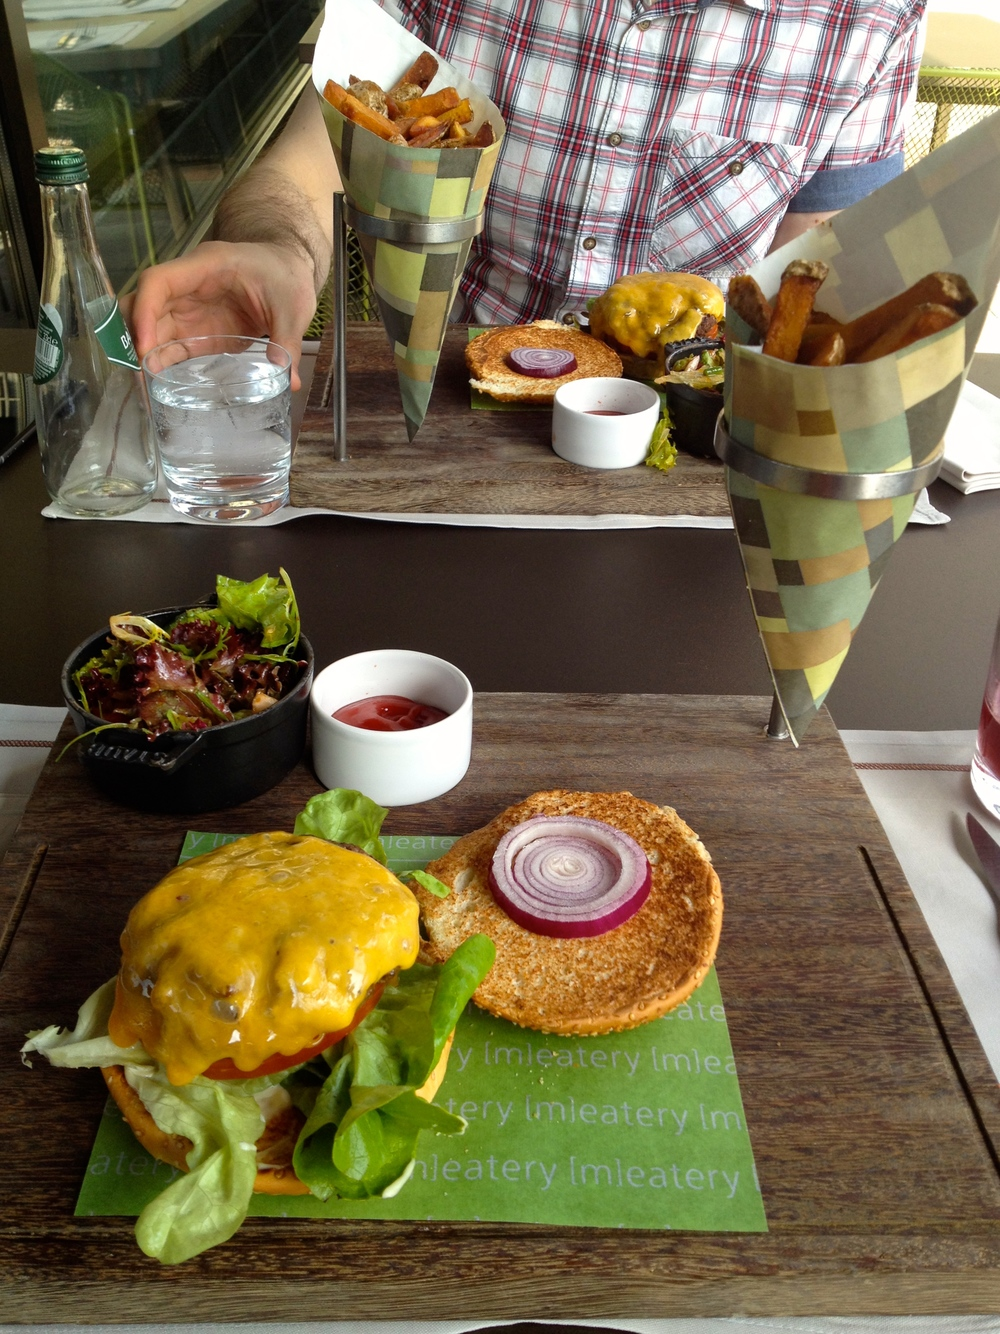 The burger presentation at the [m]eatery